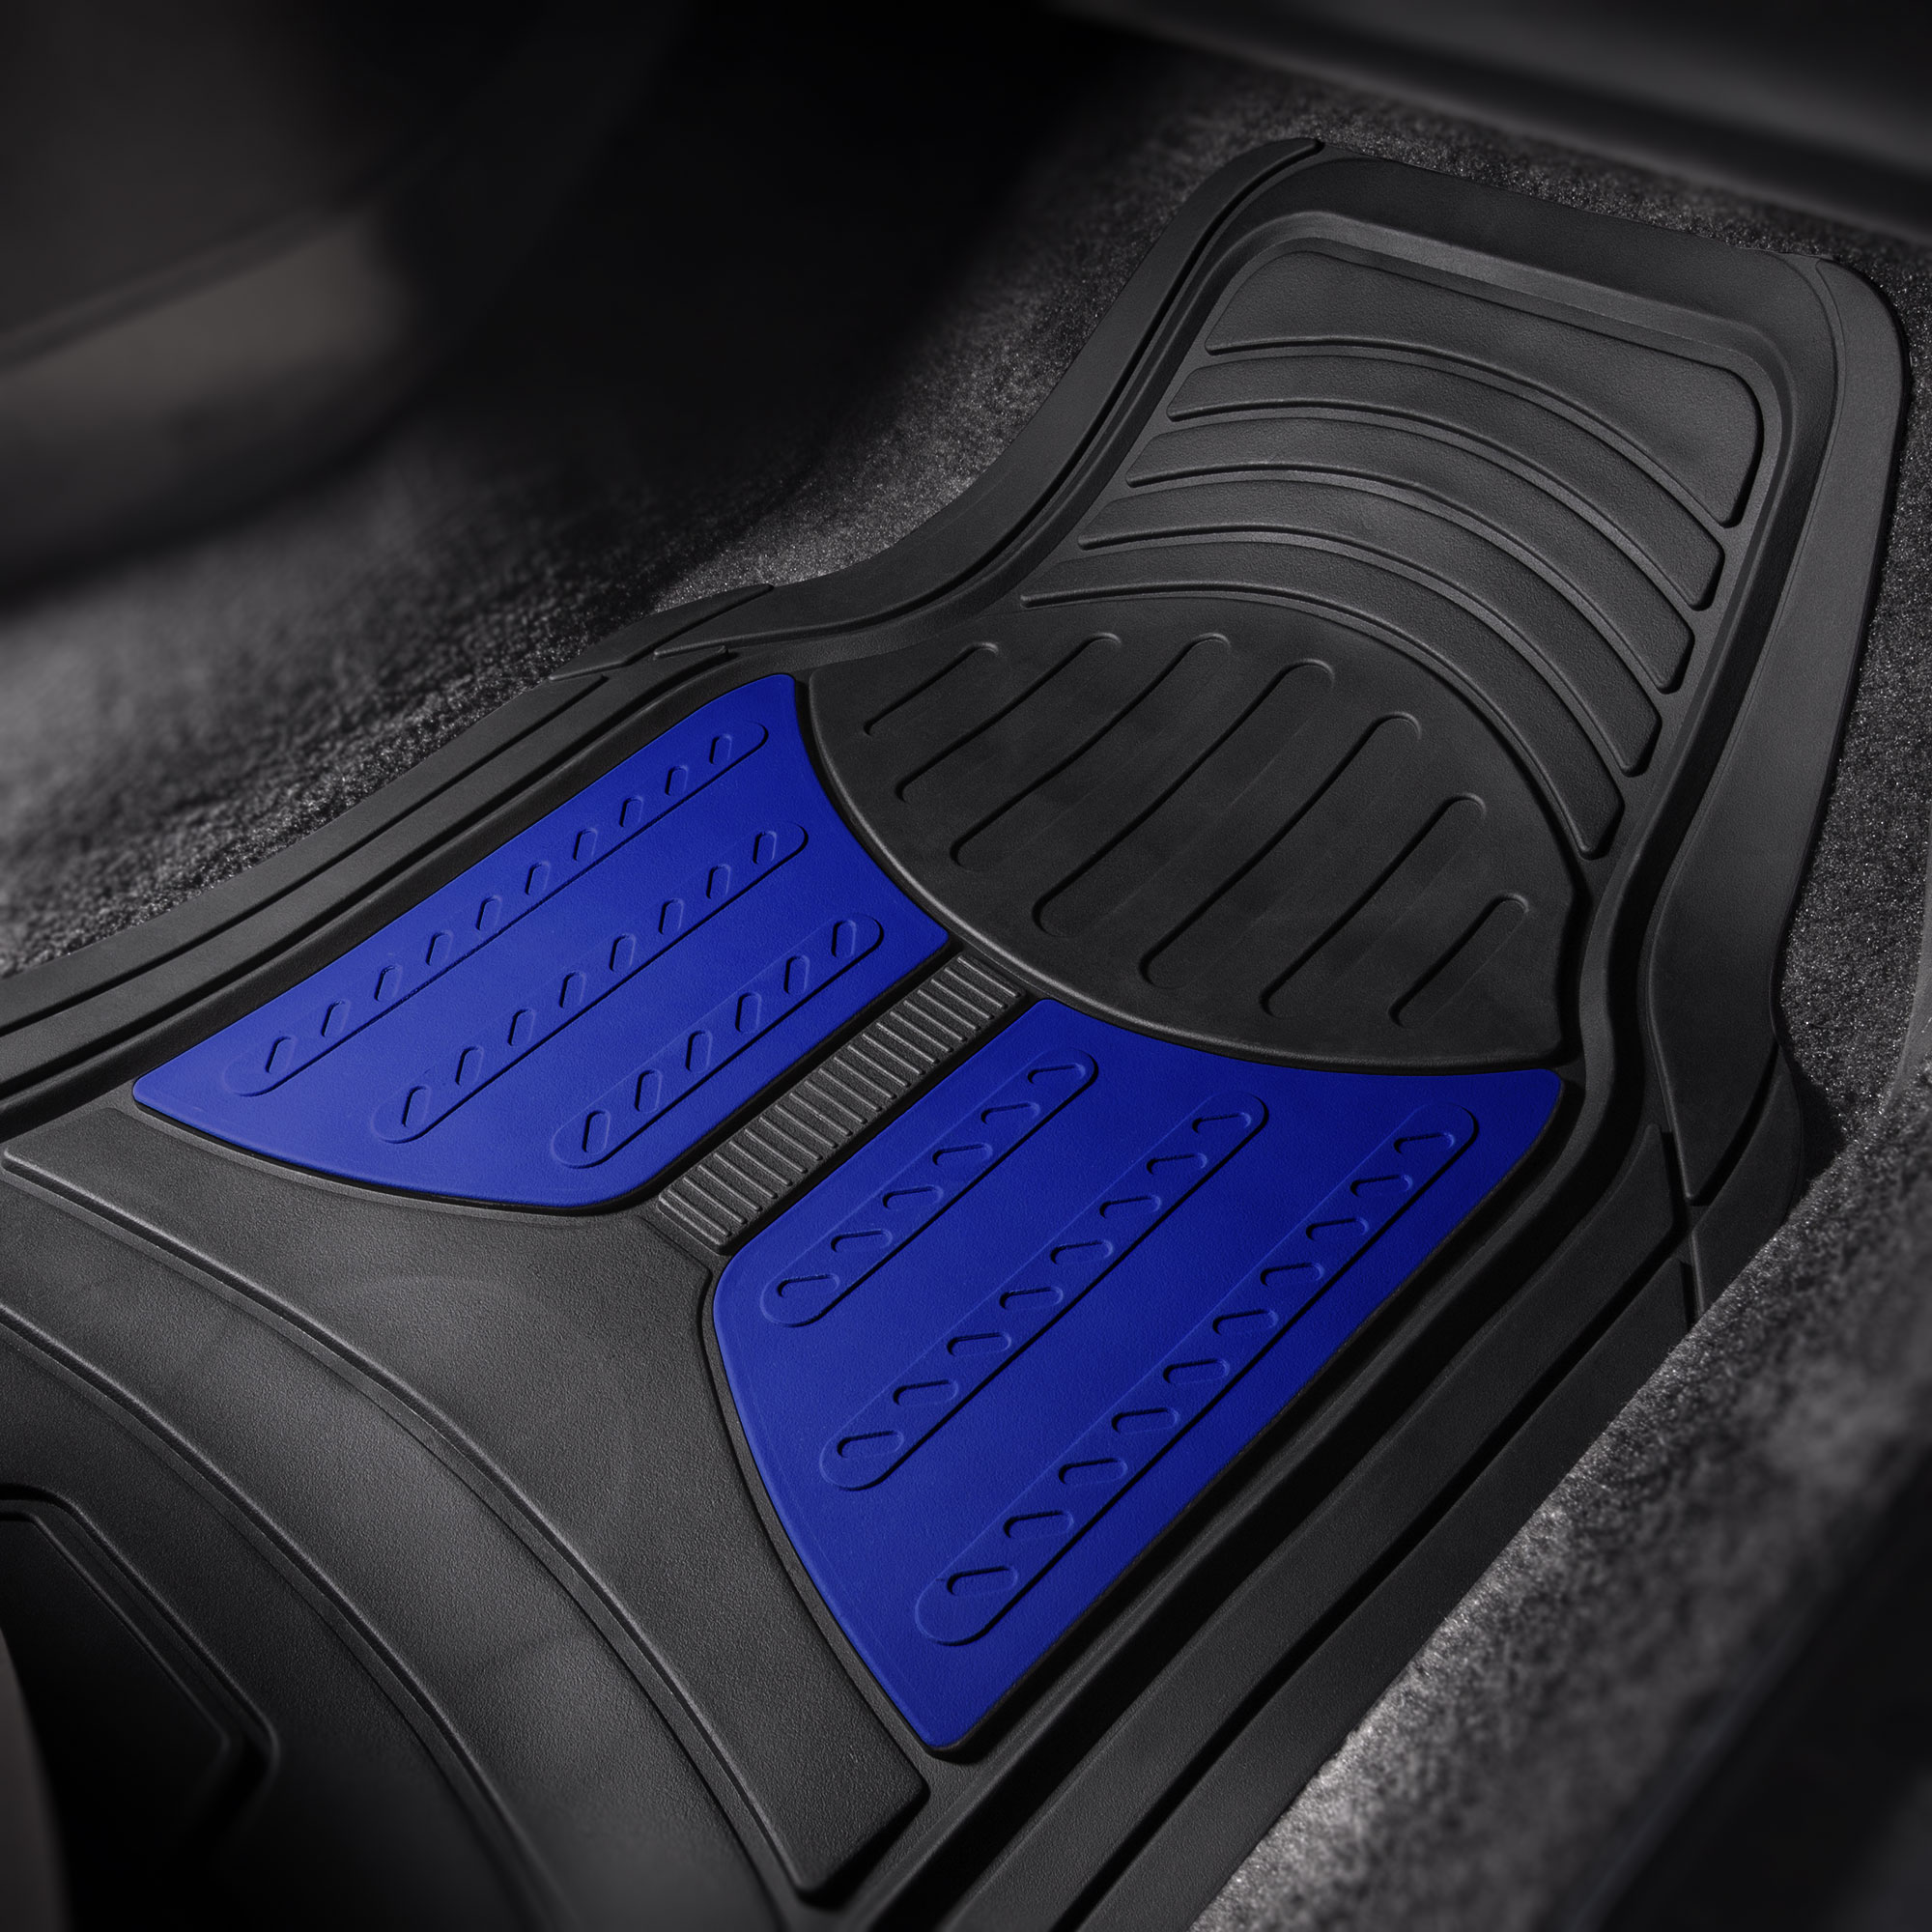 thumbnail 10 - Car Floor Mats for All Weather Rubber 2-Tone Design Heavy Duty - 4 Pc Set